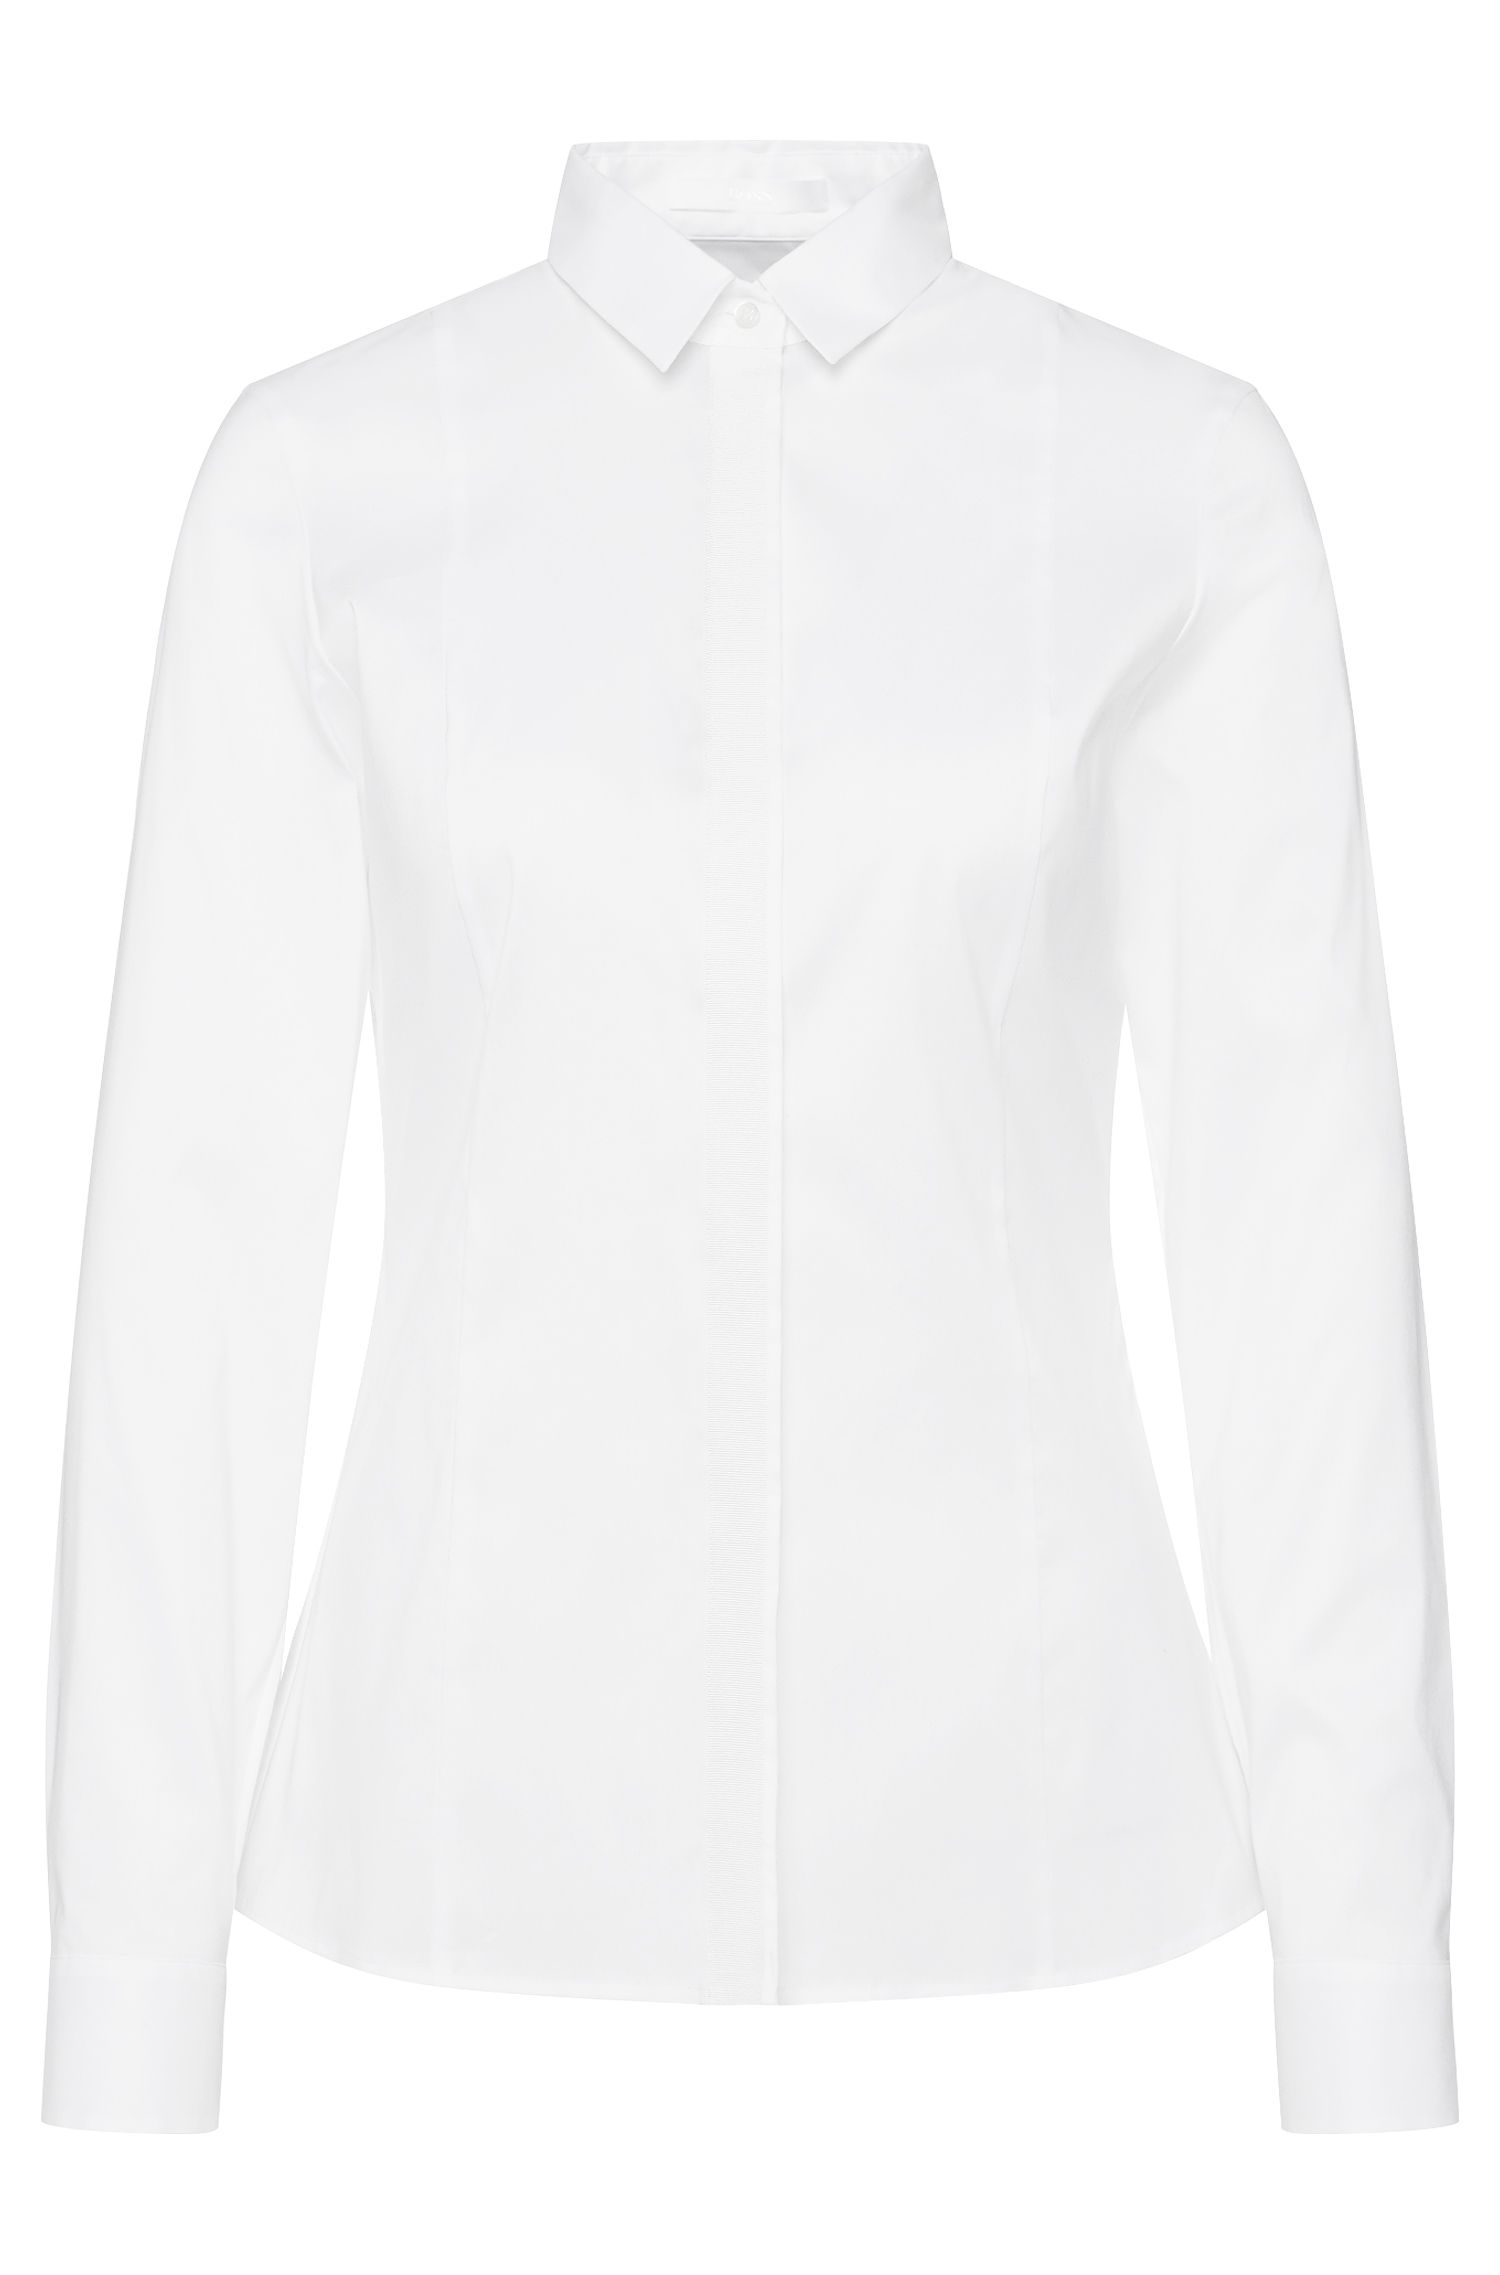 Waisted-fit blouse in cotton blend with a concealed button placket: 'Biesa'